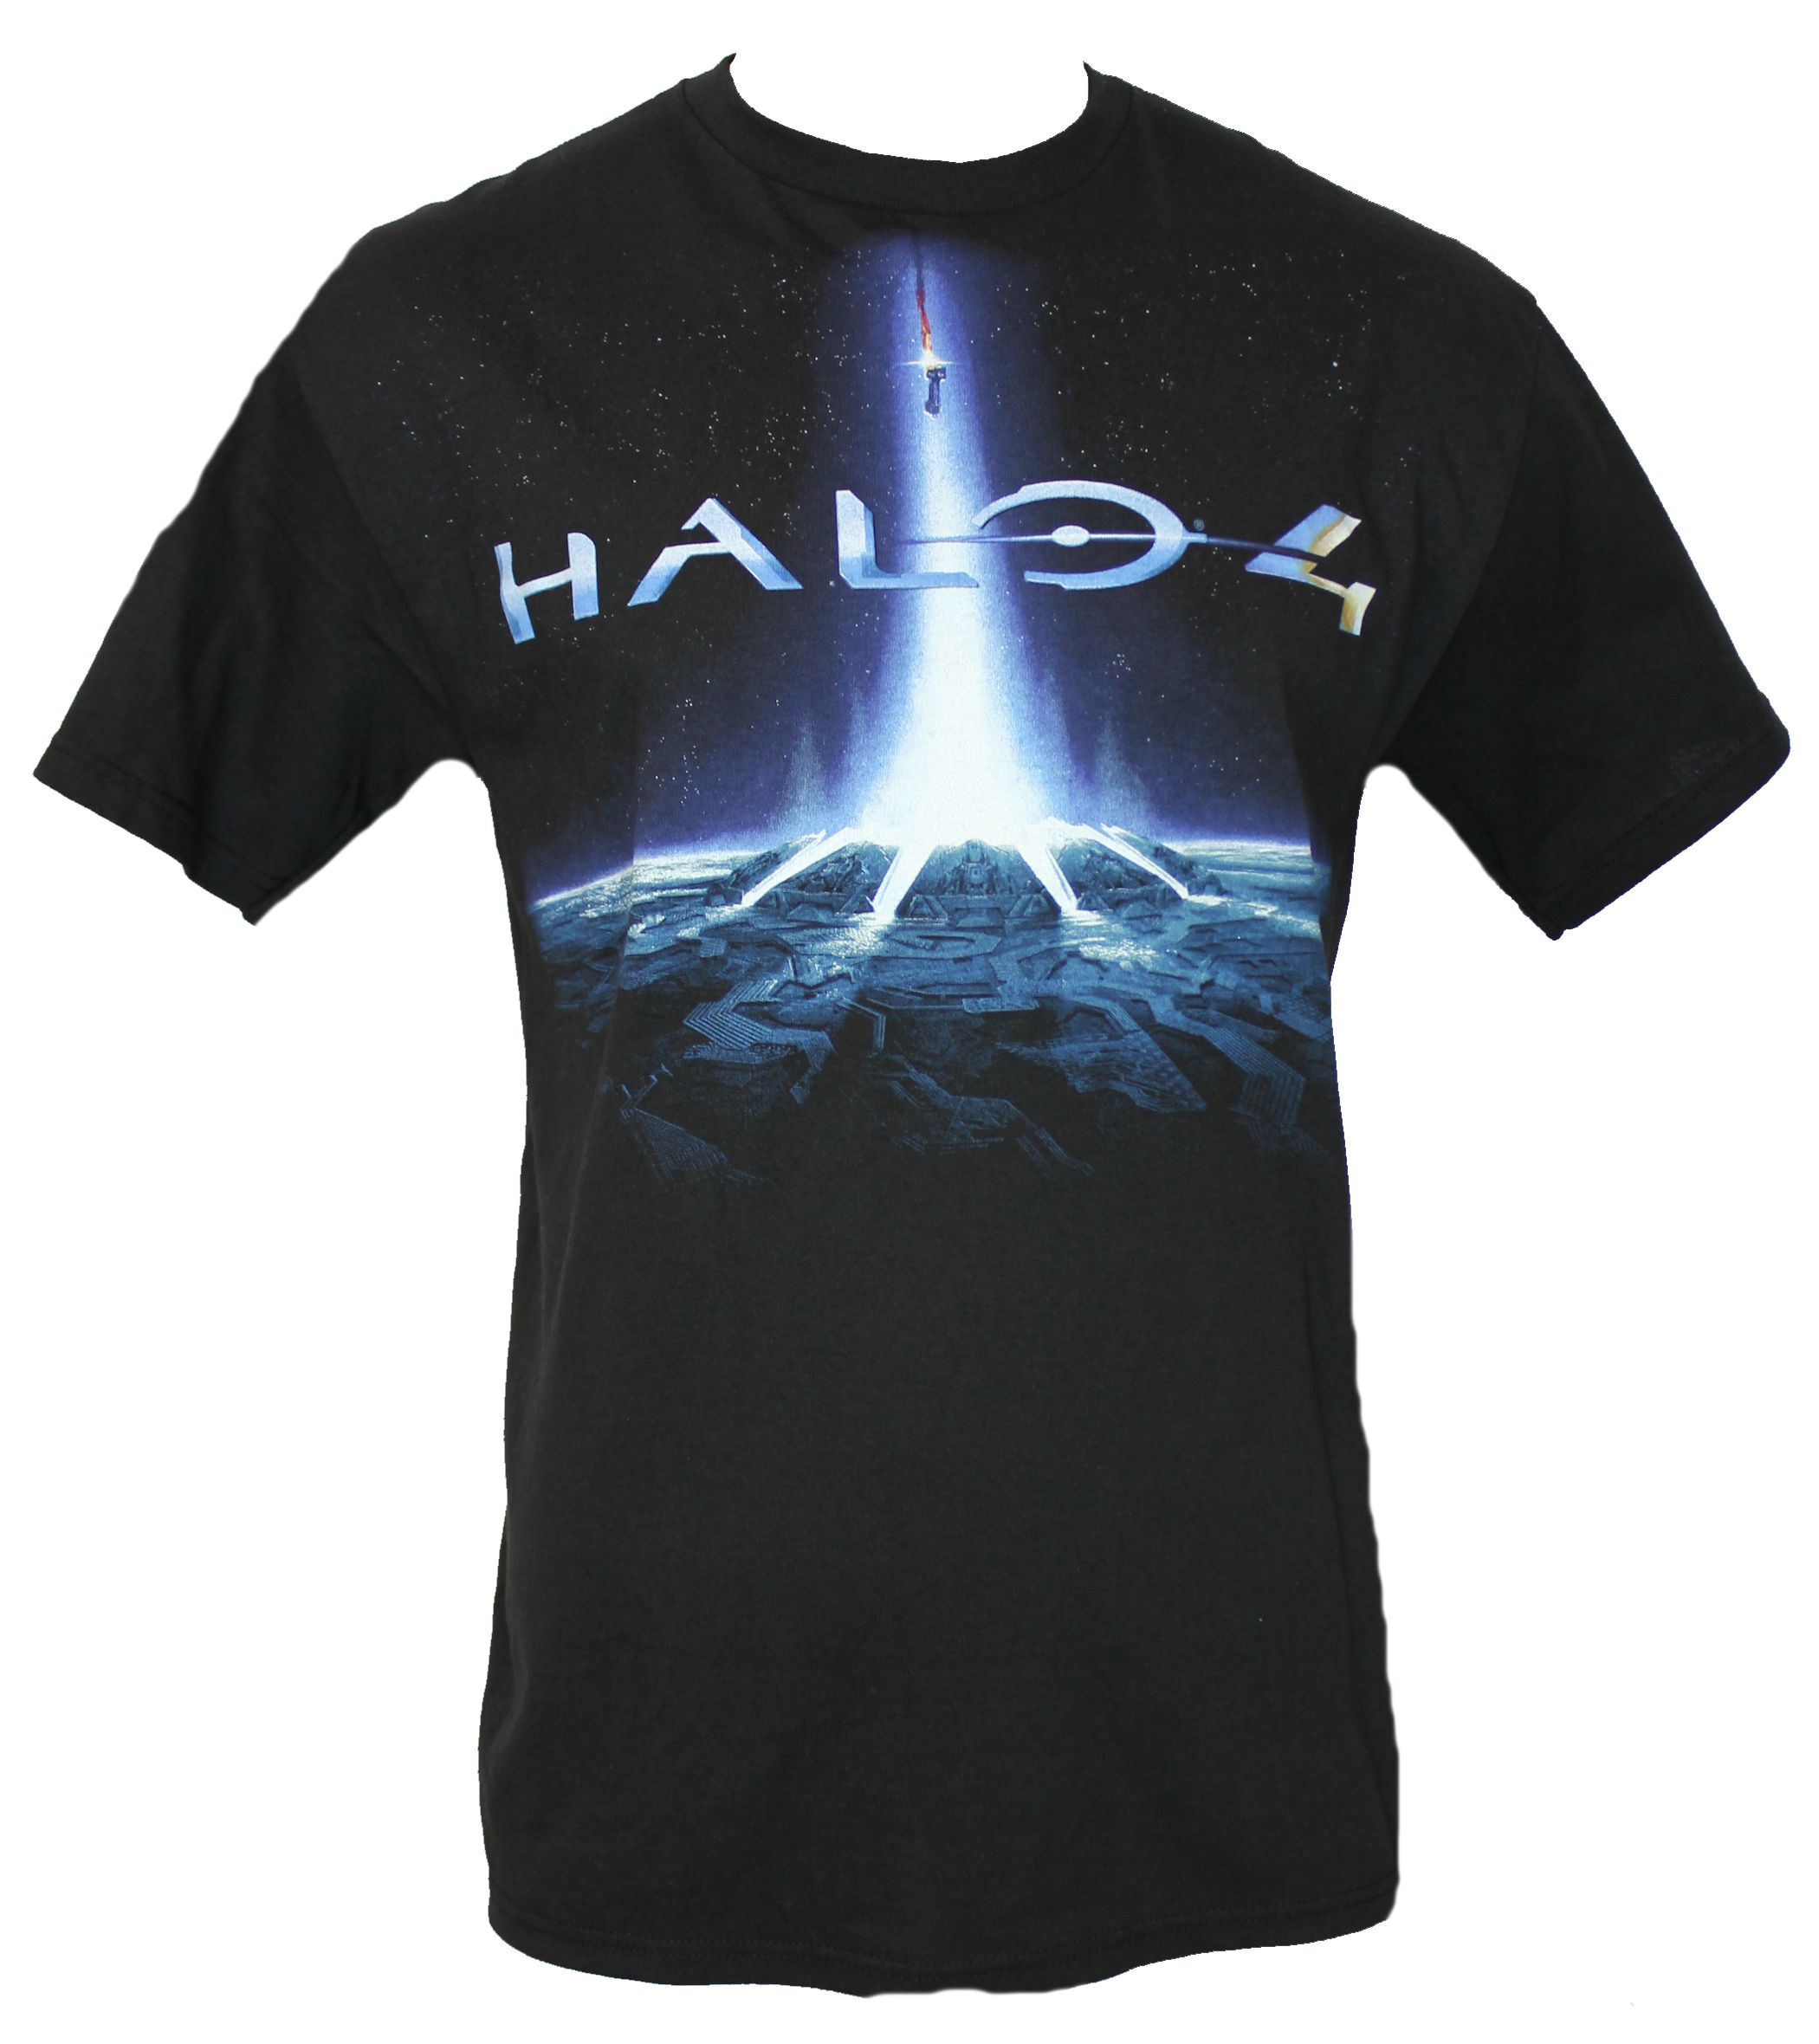 Image is Loading Halo-4-mens-t